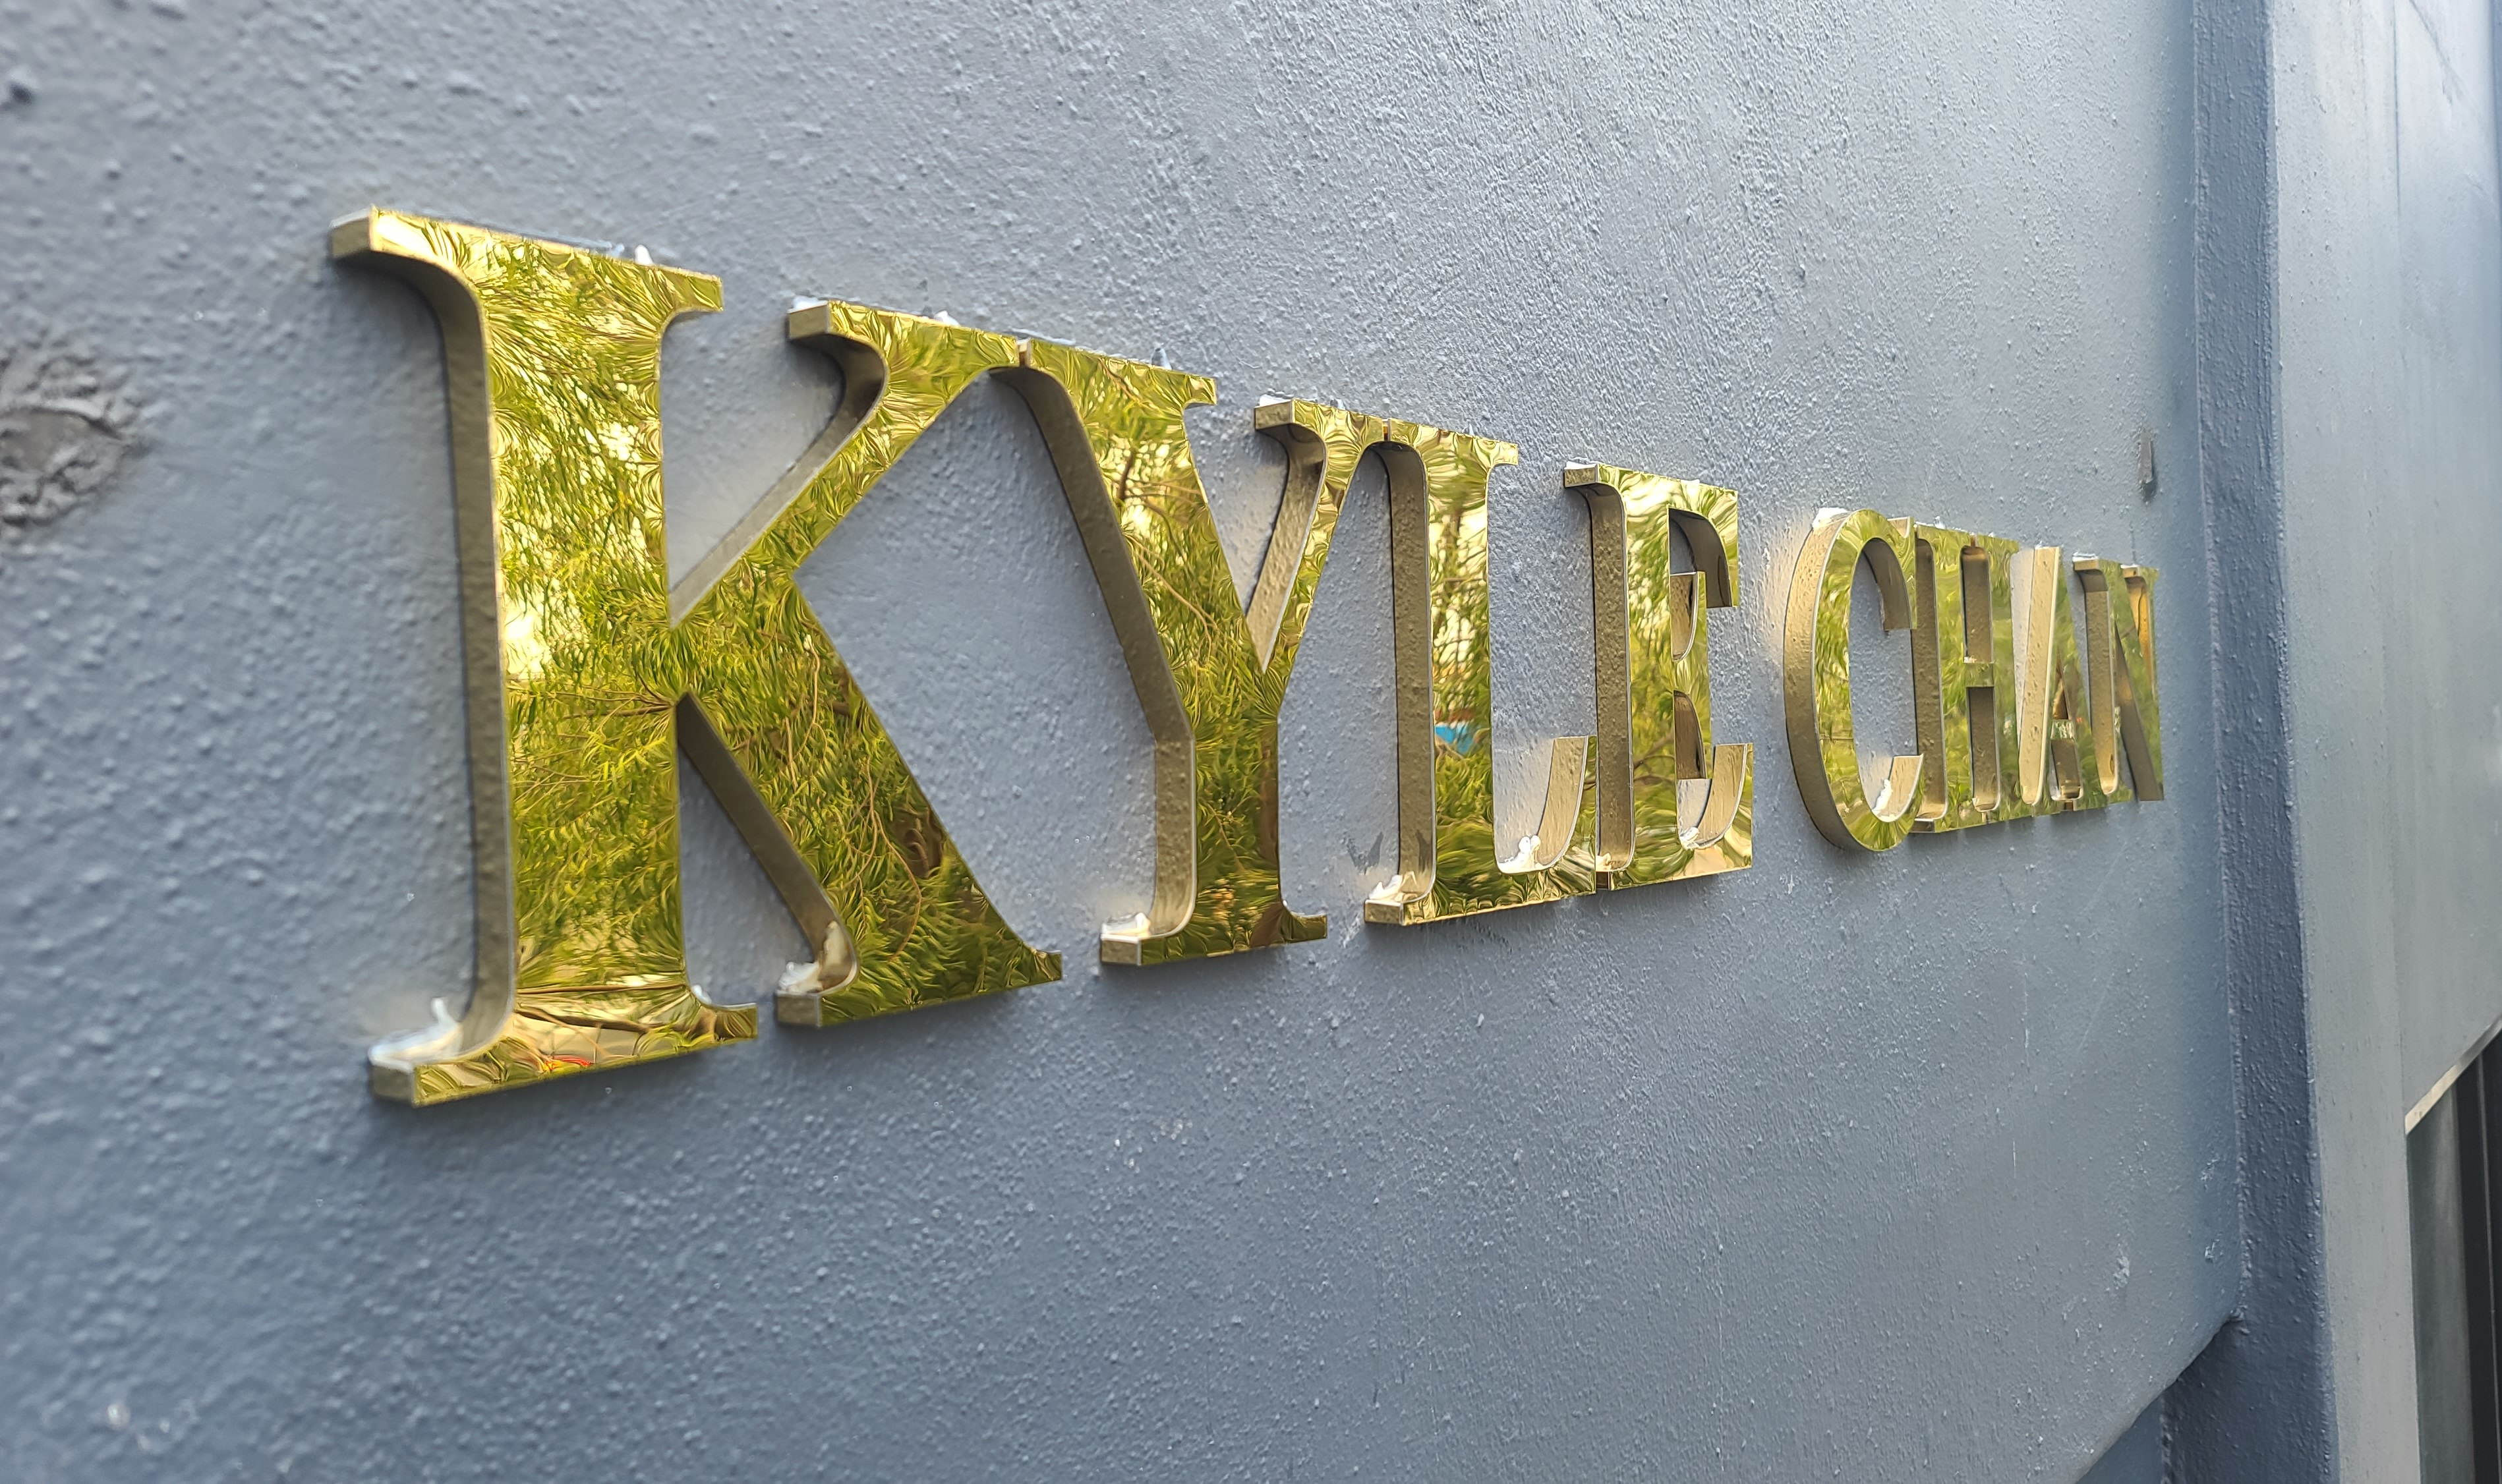 Dimensional letters for Kyle Chan, boutique storefront sign for their West Hollywood branch that is certainly visually stunning.